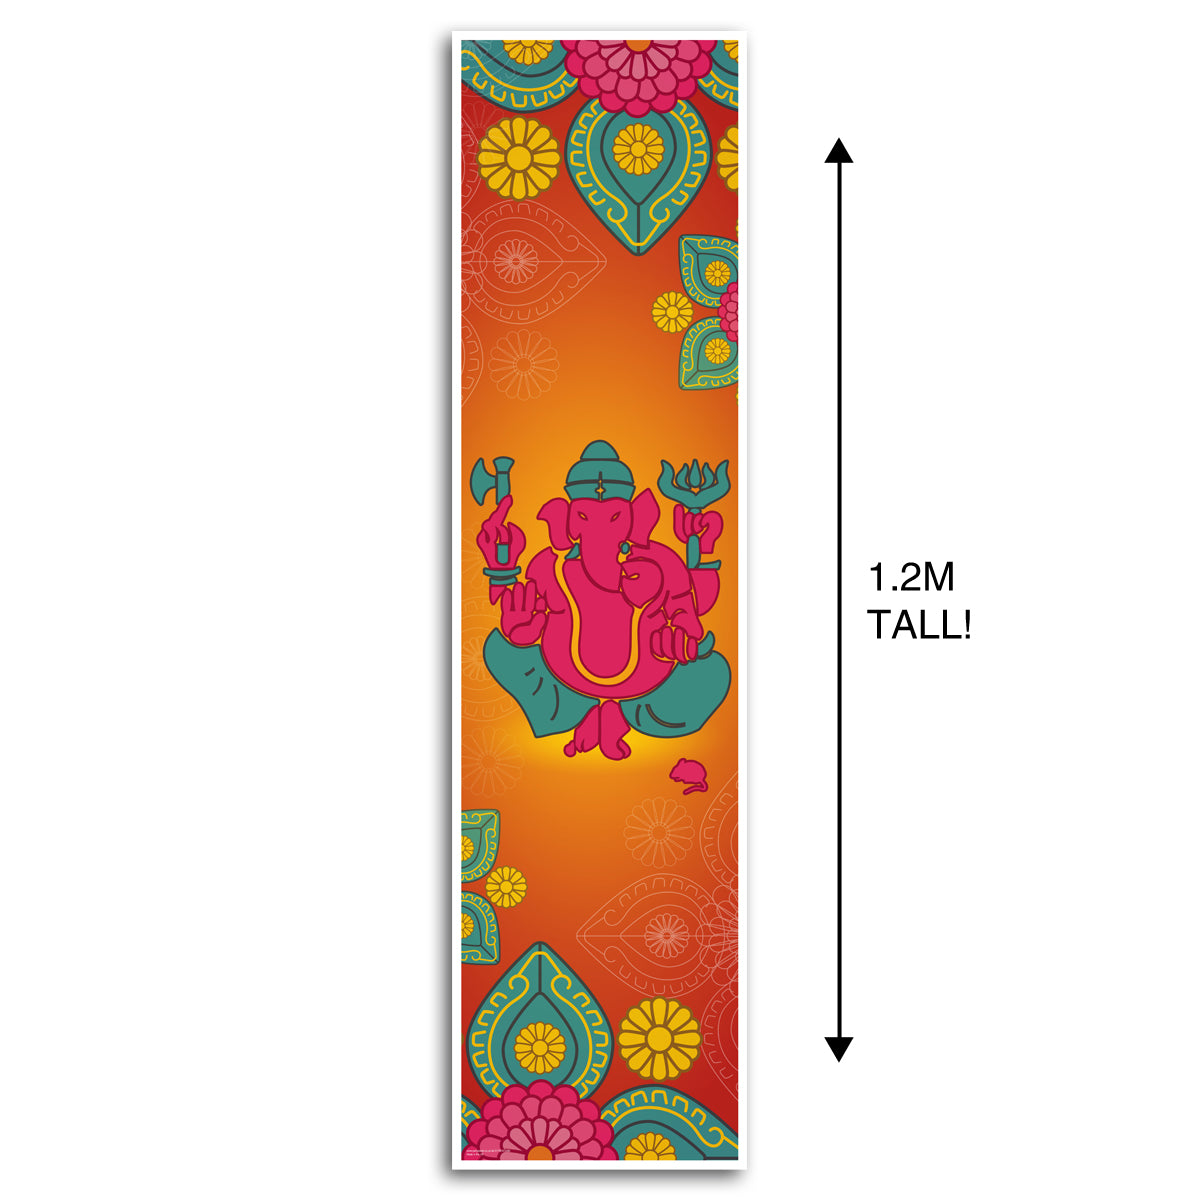 Diwali Ganesh Portrait Wall & Door Banner Decoration - 1.2m